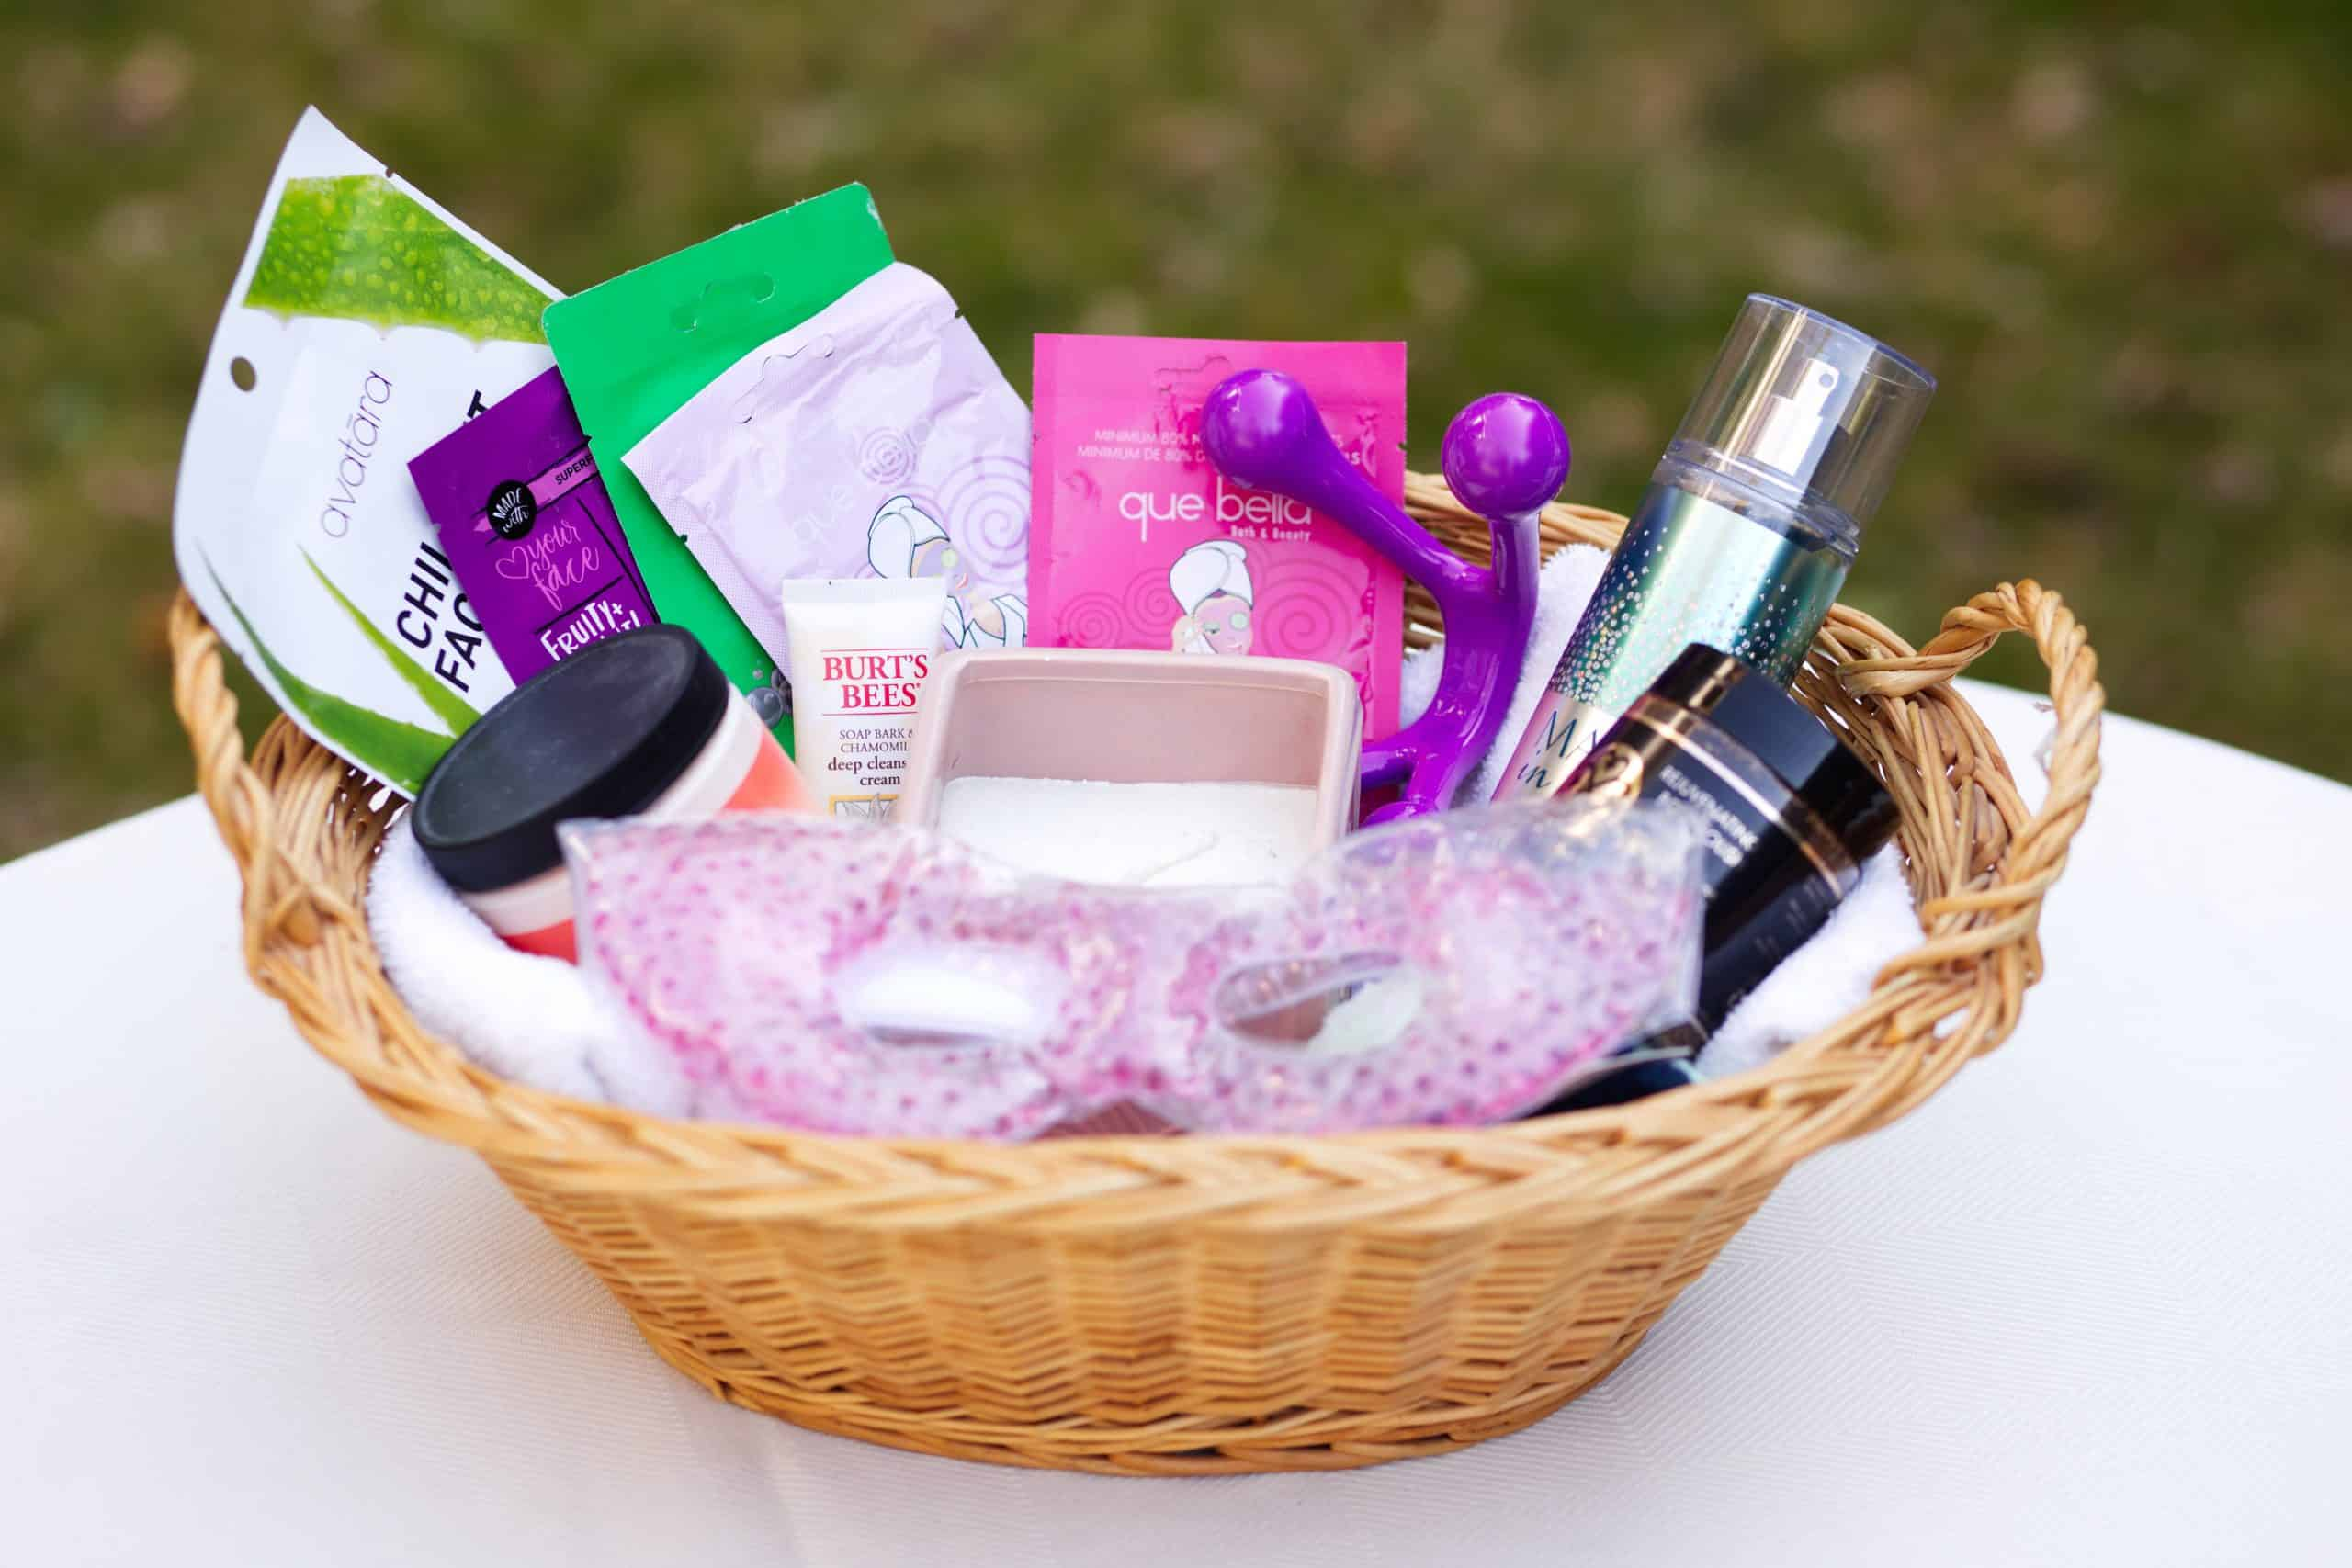 Spa day gift basket - basket full of at-home spa products